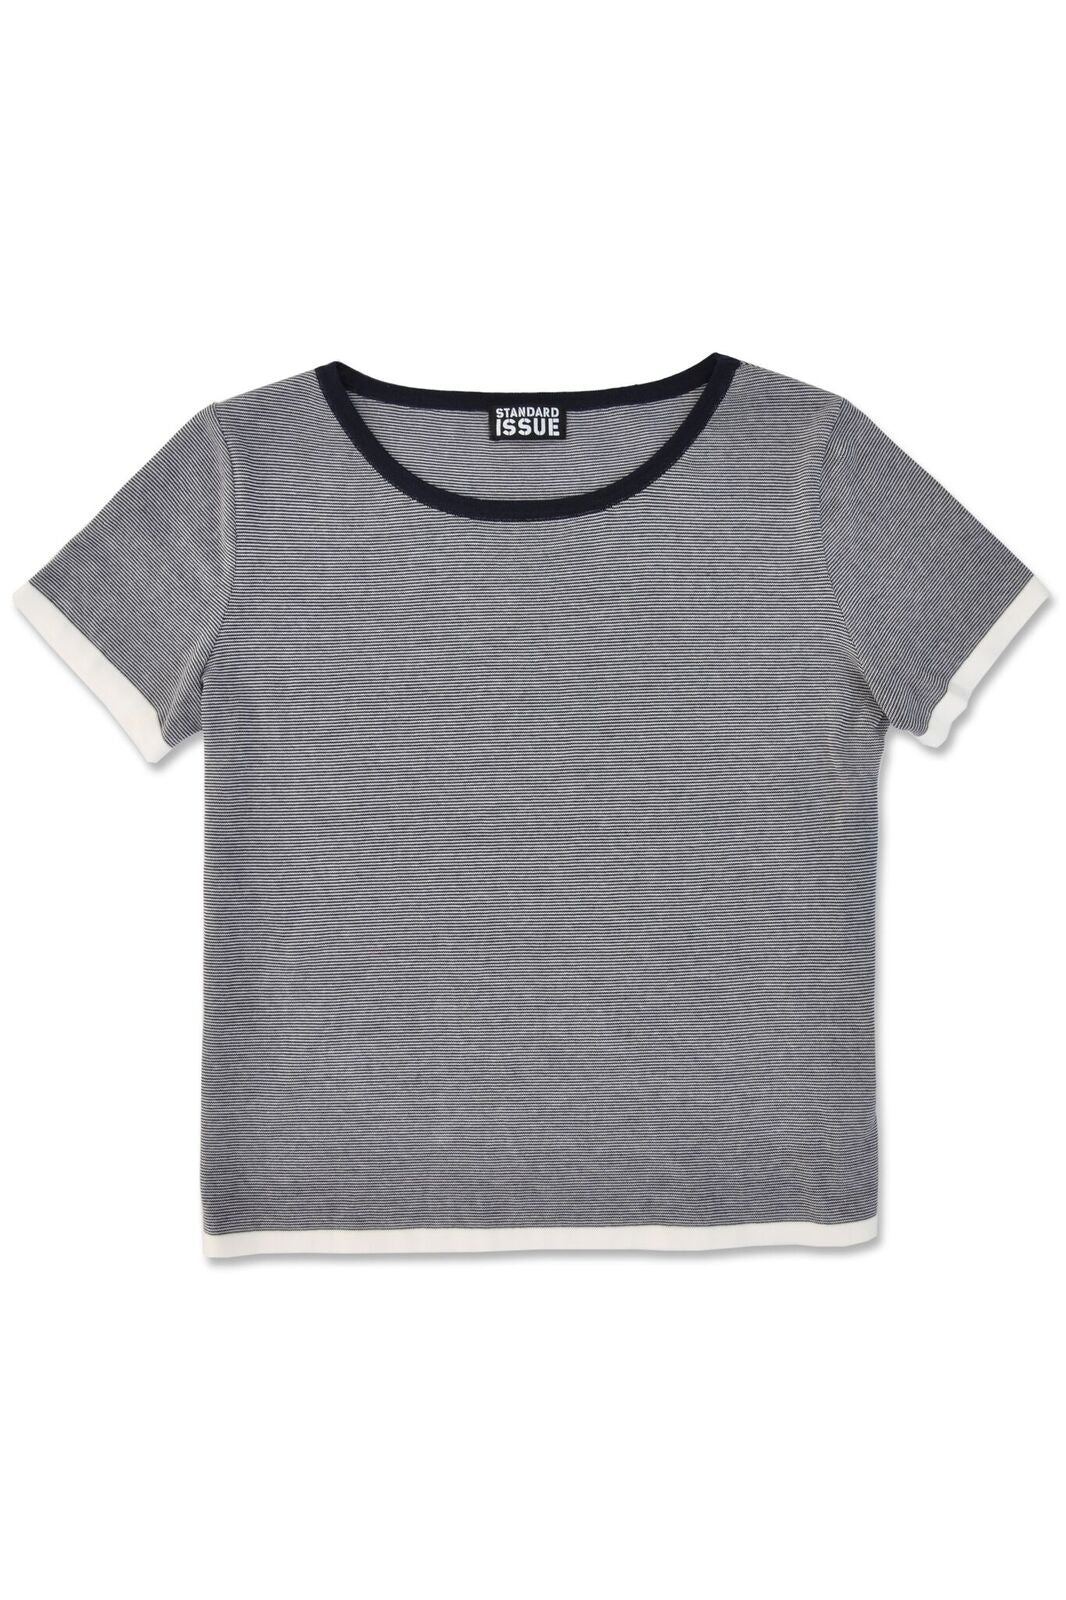 Standard Issue Micro Stripe Tee Cotton Knit Made in New Zealand